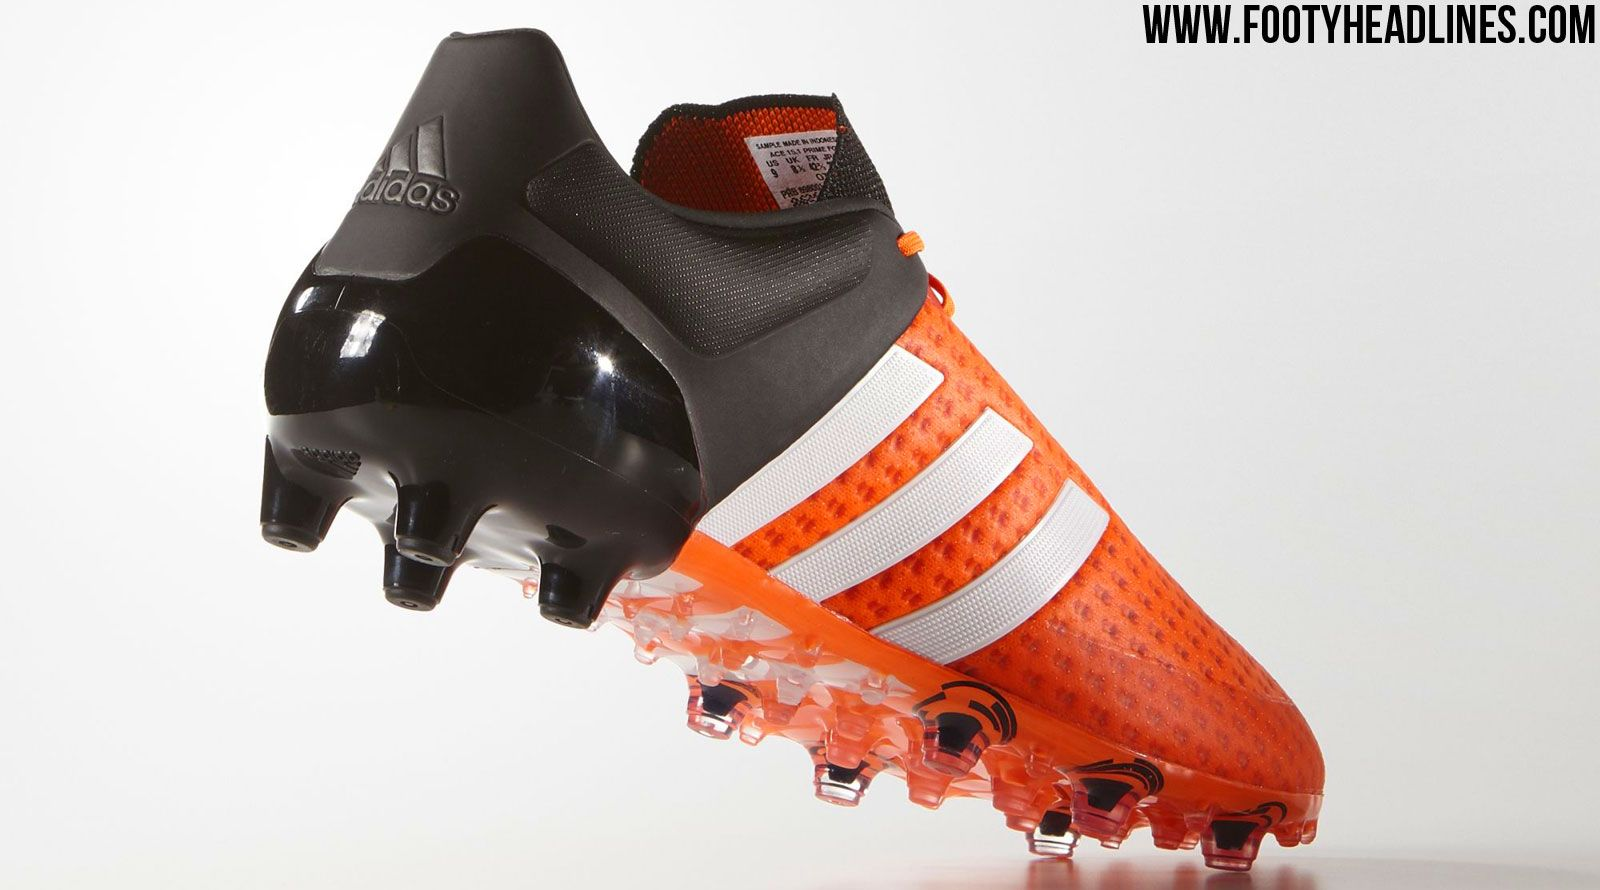 germany new adidas soccer cleats 2015 979ed d6248